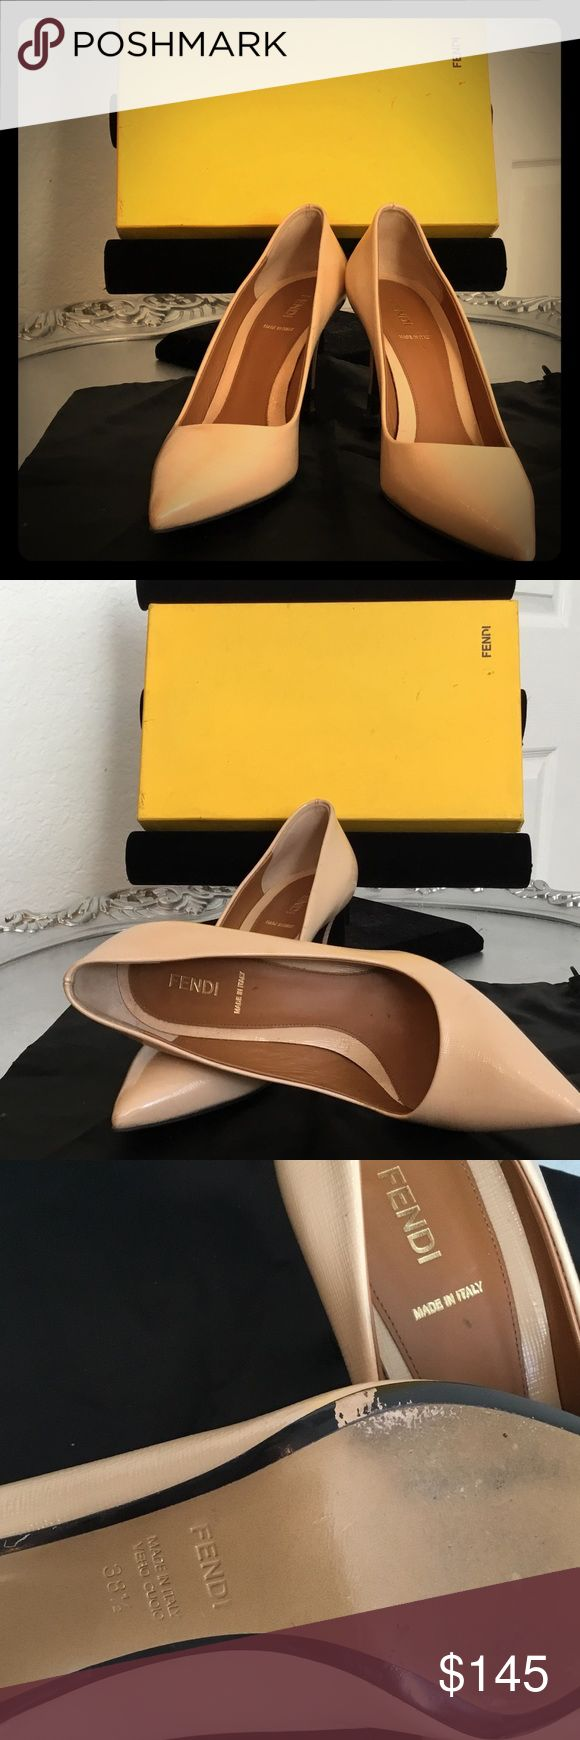 !! SALE!! FENDI high heel shoes FENDI 31/2 heel. Used but In very good conditions.made in Italy. Leather. Fendi Shoes Heels